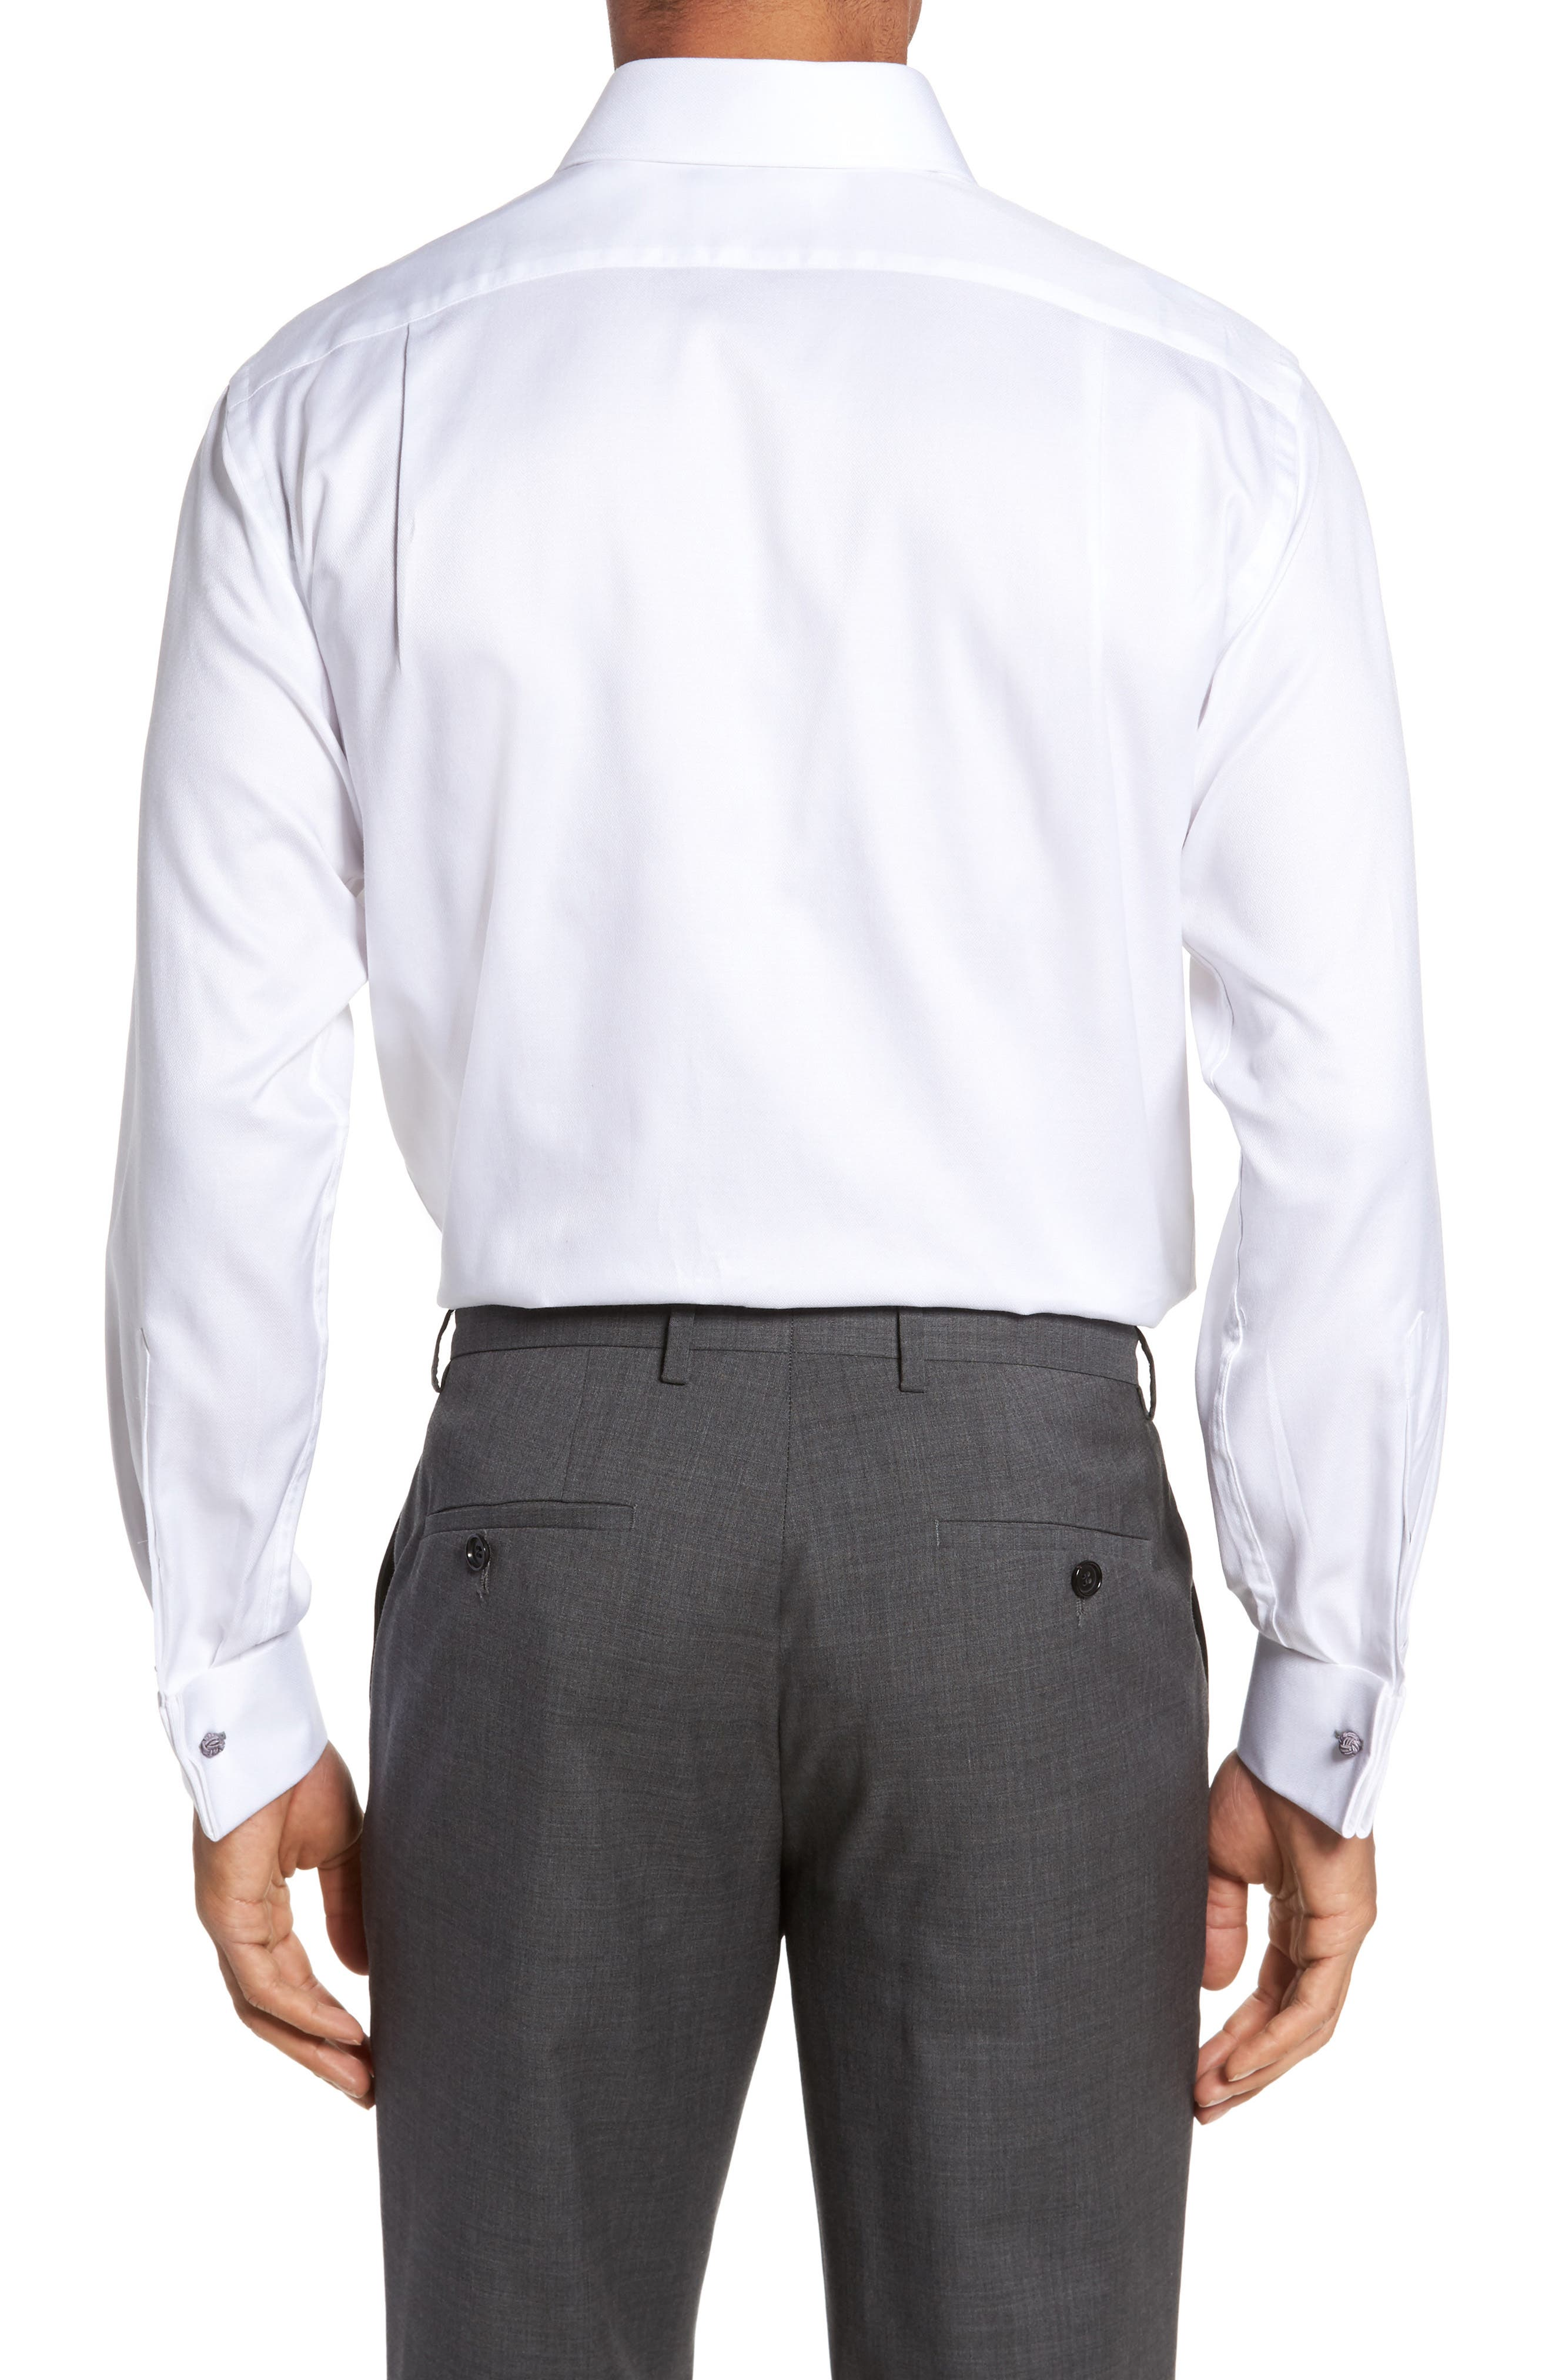 Trim Fit Solid Dress Shirt,                             Alternate thumbnail 2, color,                             White